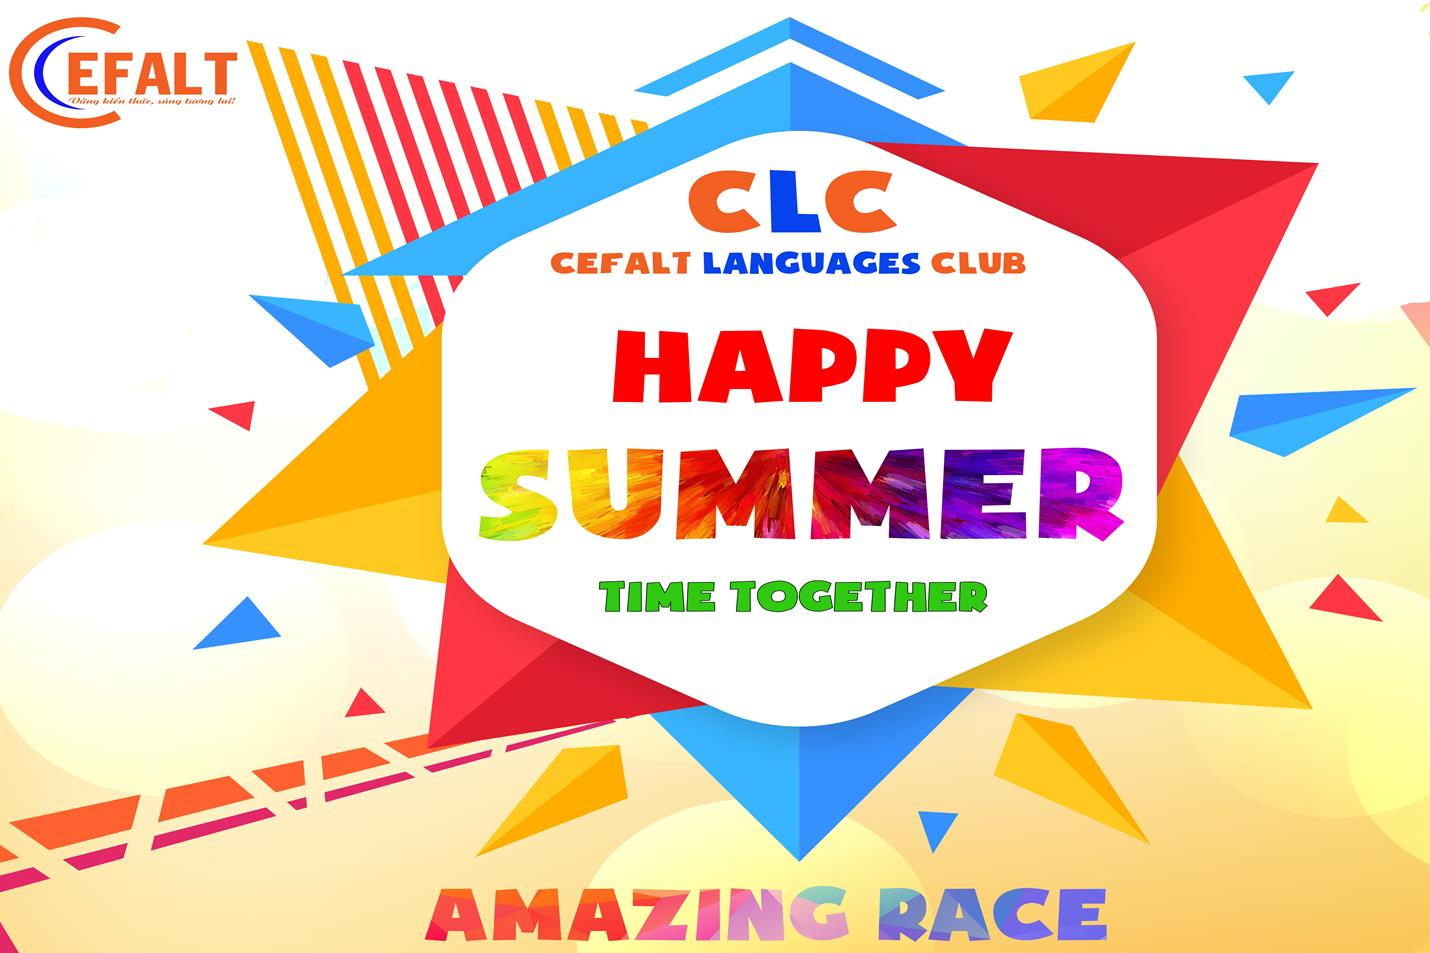 cefalt-languages-club---happy-summer